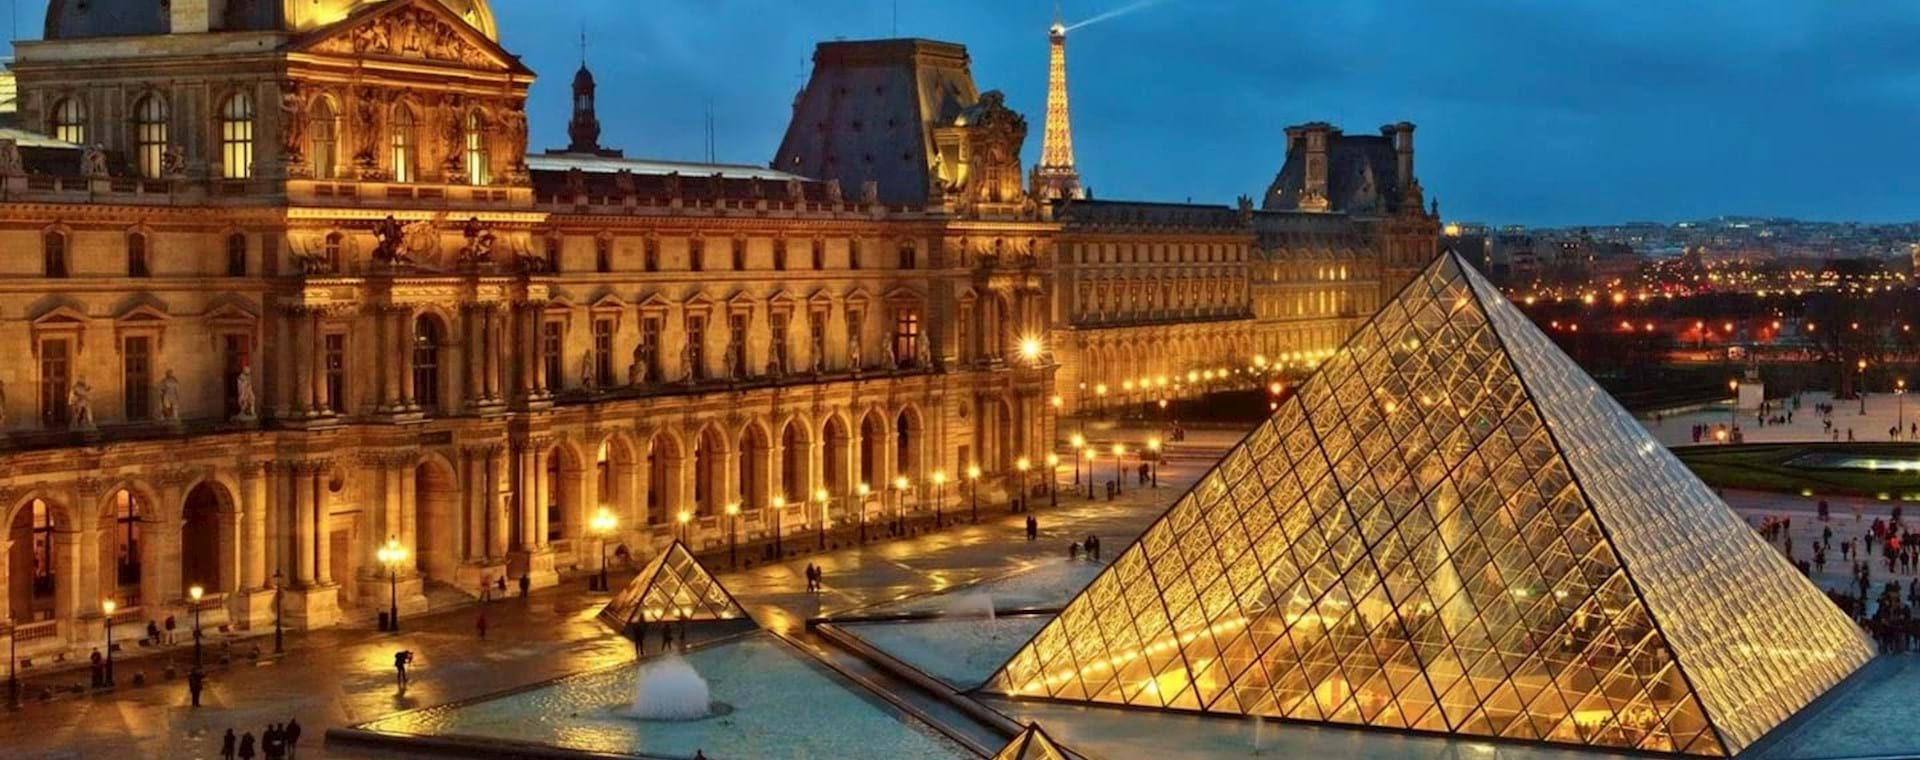 VIP Louvre Highlights and Wine Tasting Evening Tour